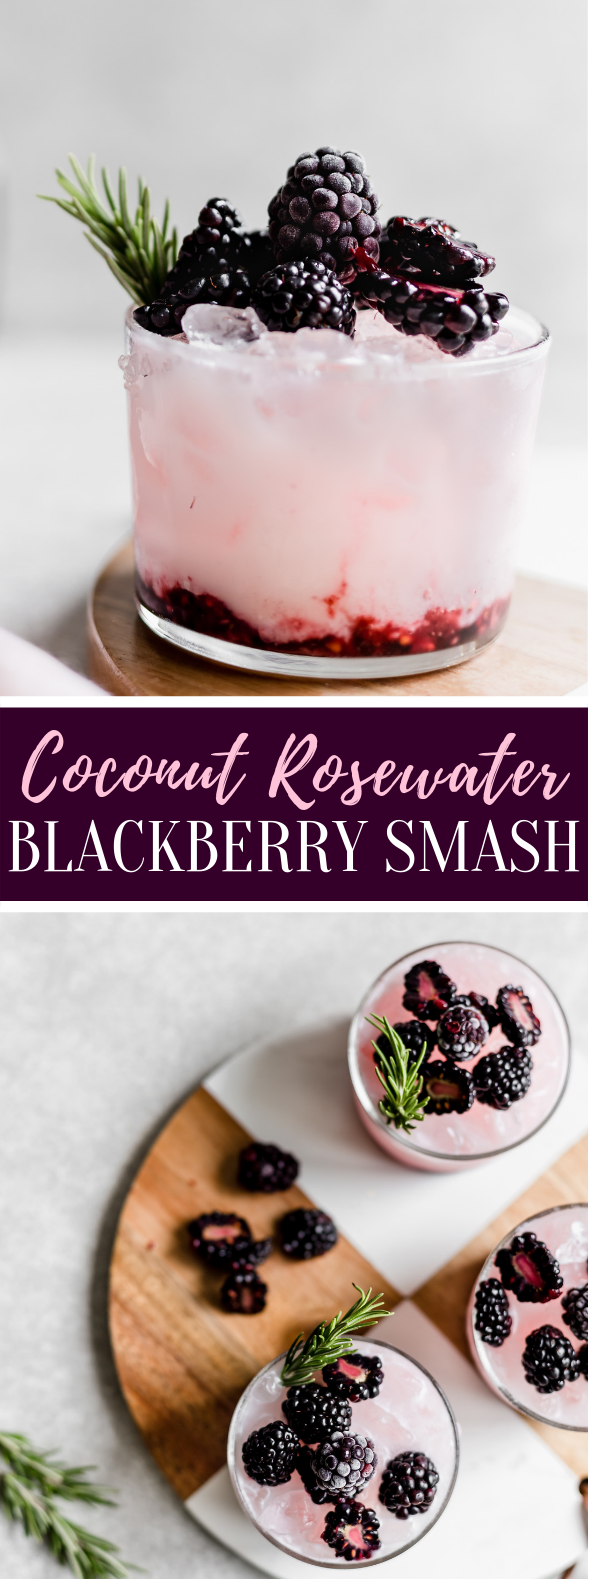 COCONUT ROSEWATER BLACKBERRY SMASH #drinks #cocktails